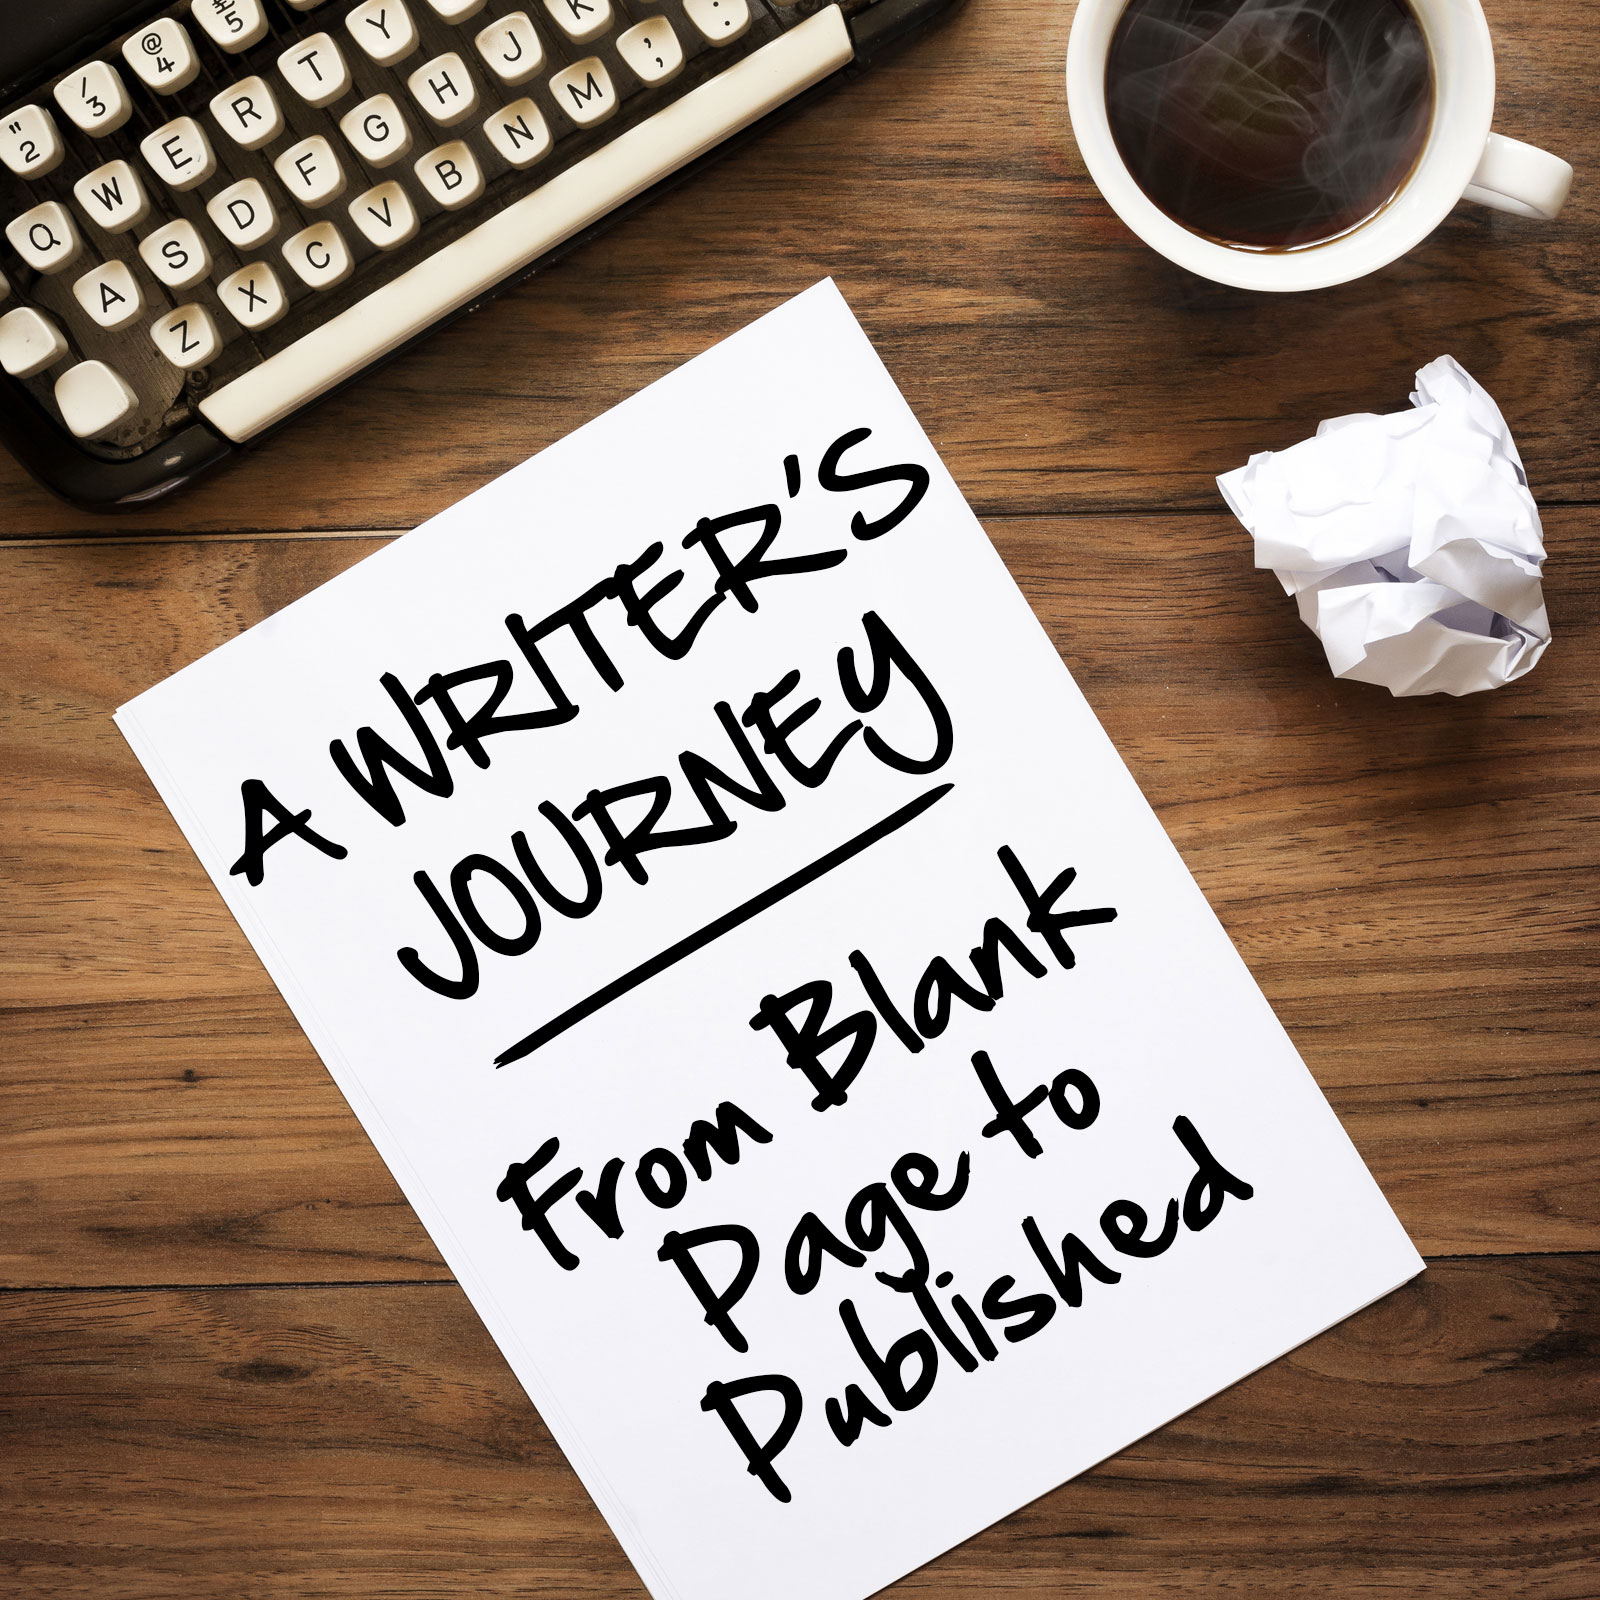 A Writer's Journey: From Blank Page to Published